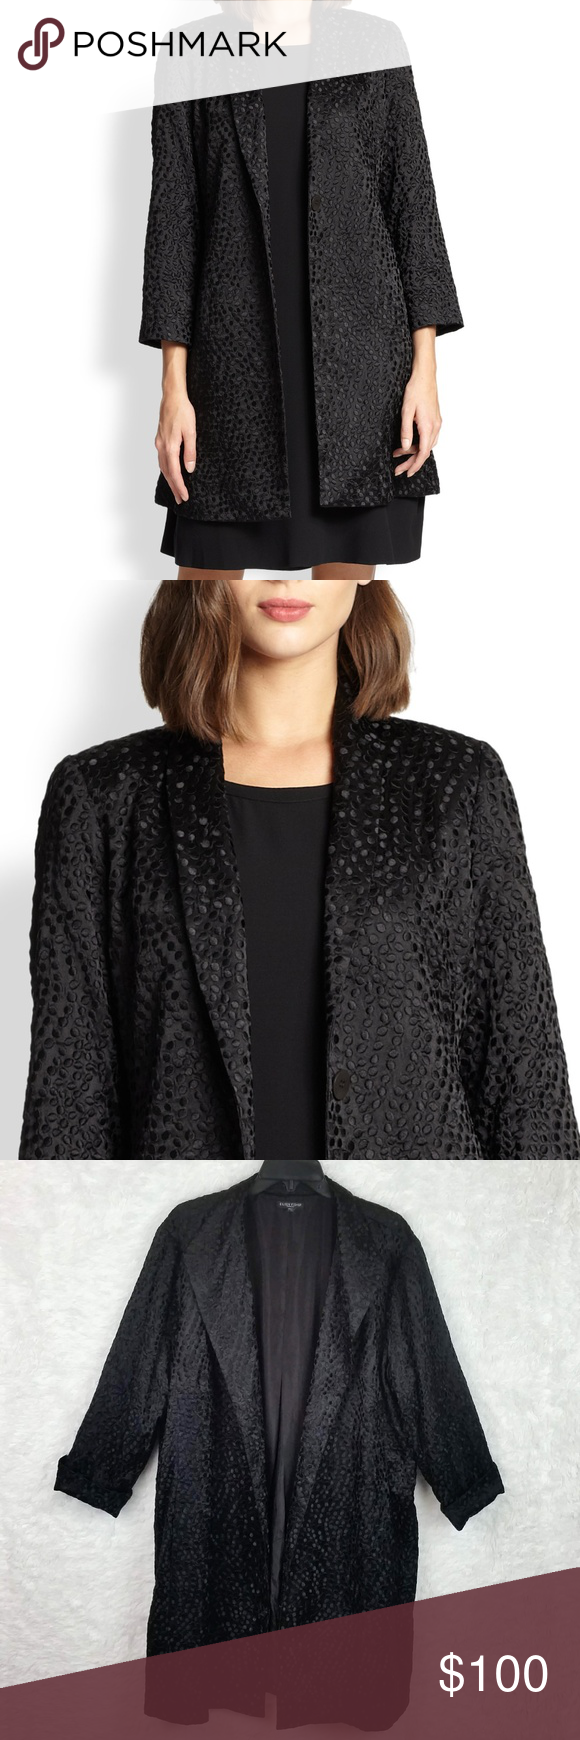 Eileen Fisher Silk Embroidered Dots 3 4 Long Coat Fashion Clothes Design Fashion Tips [ 1740 x 580 Pixel ]